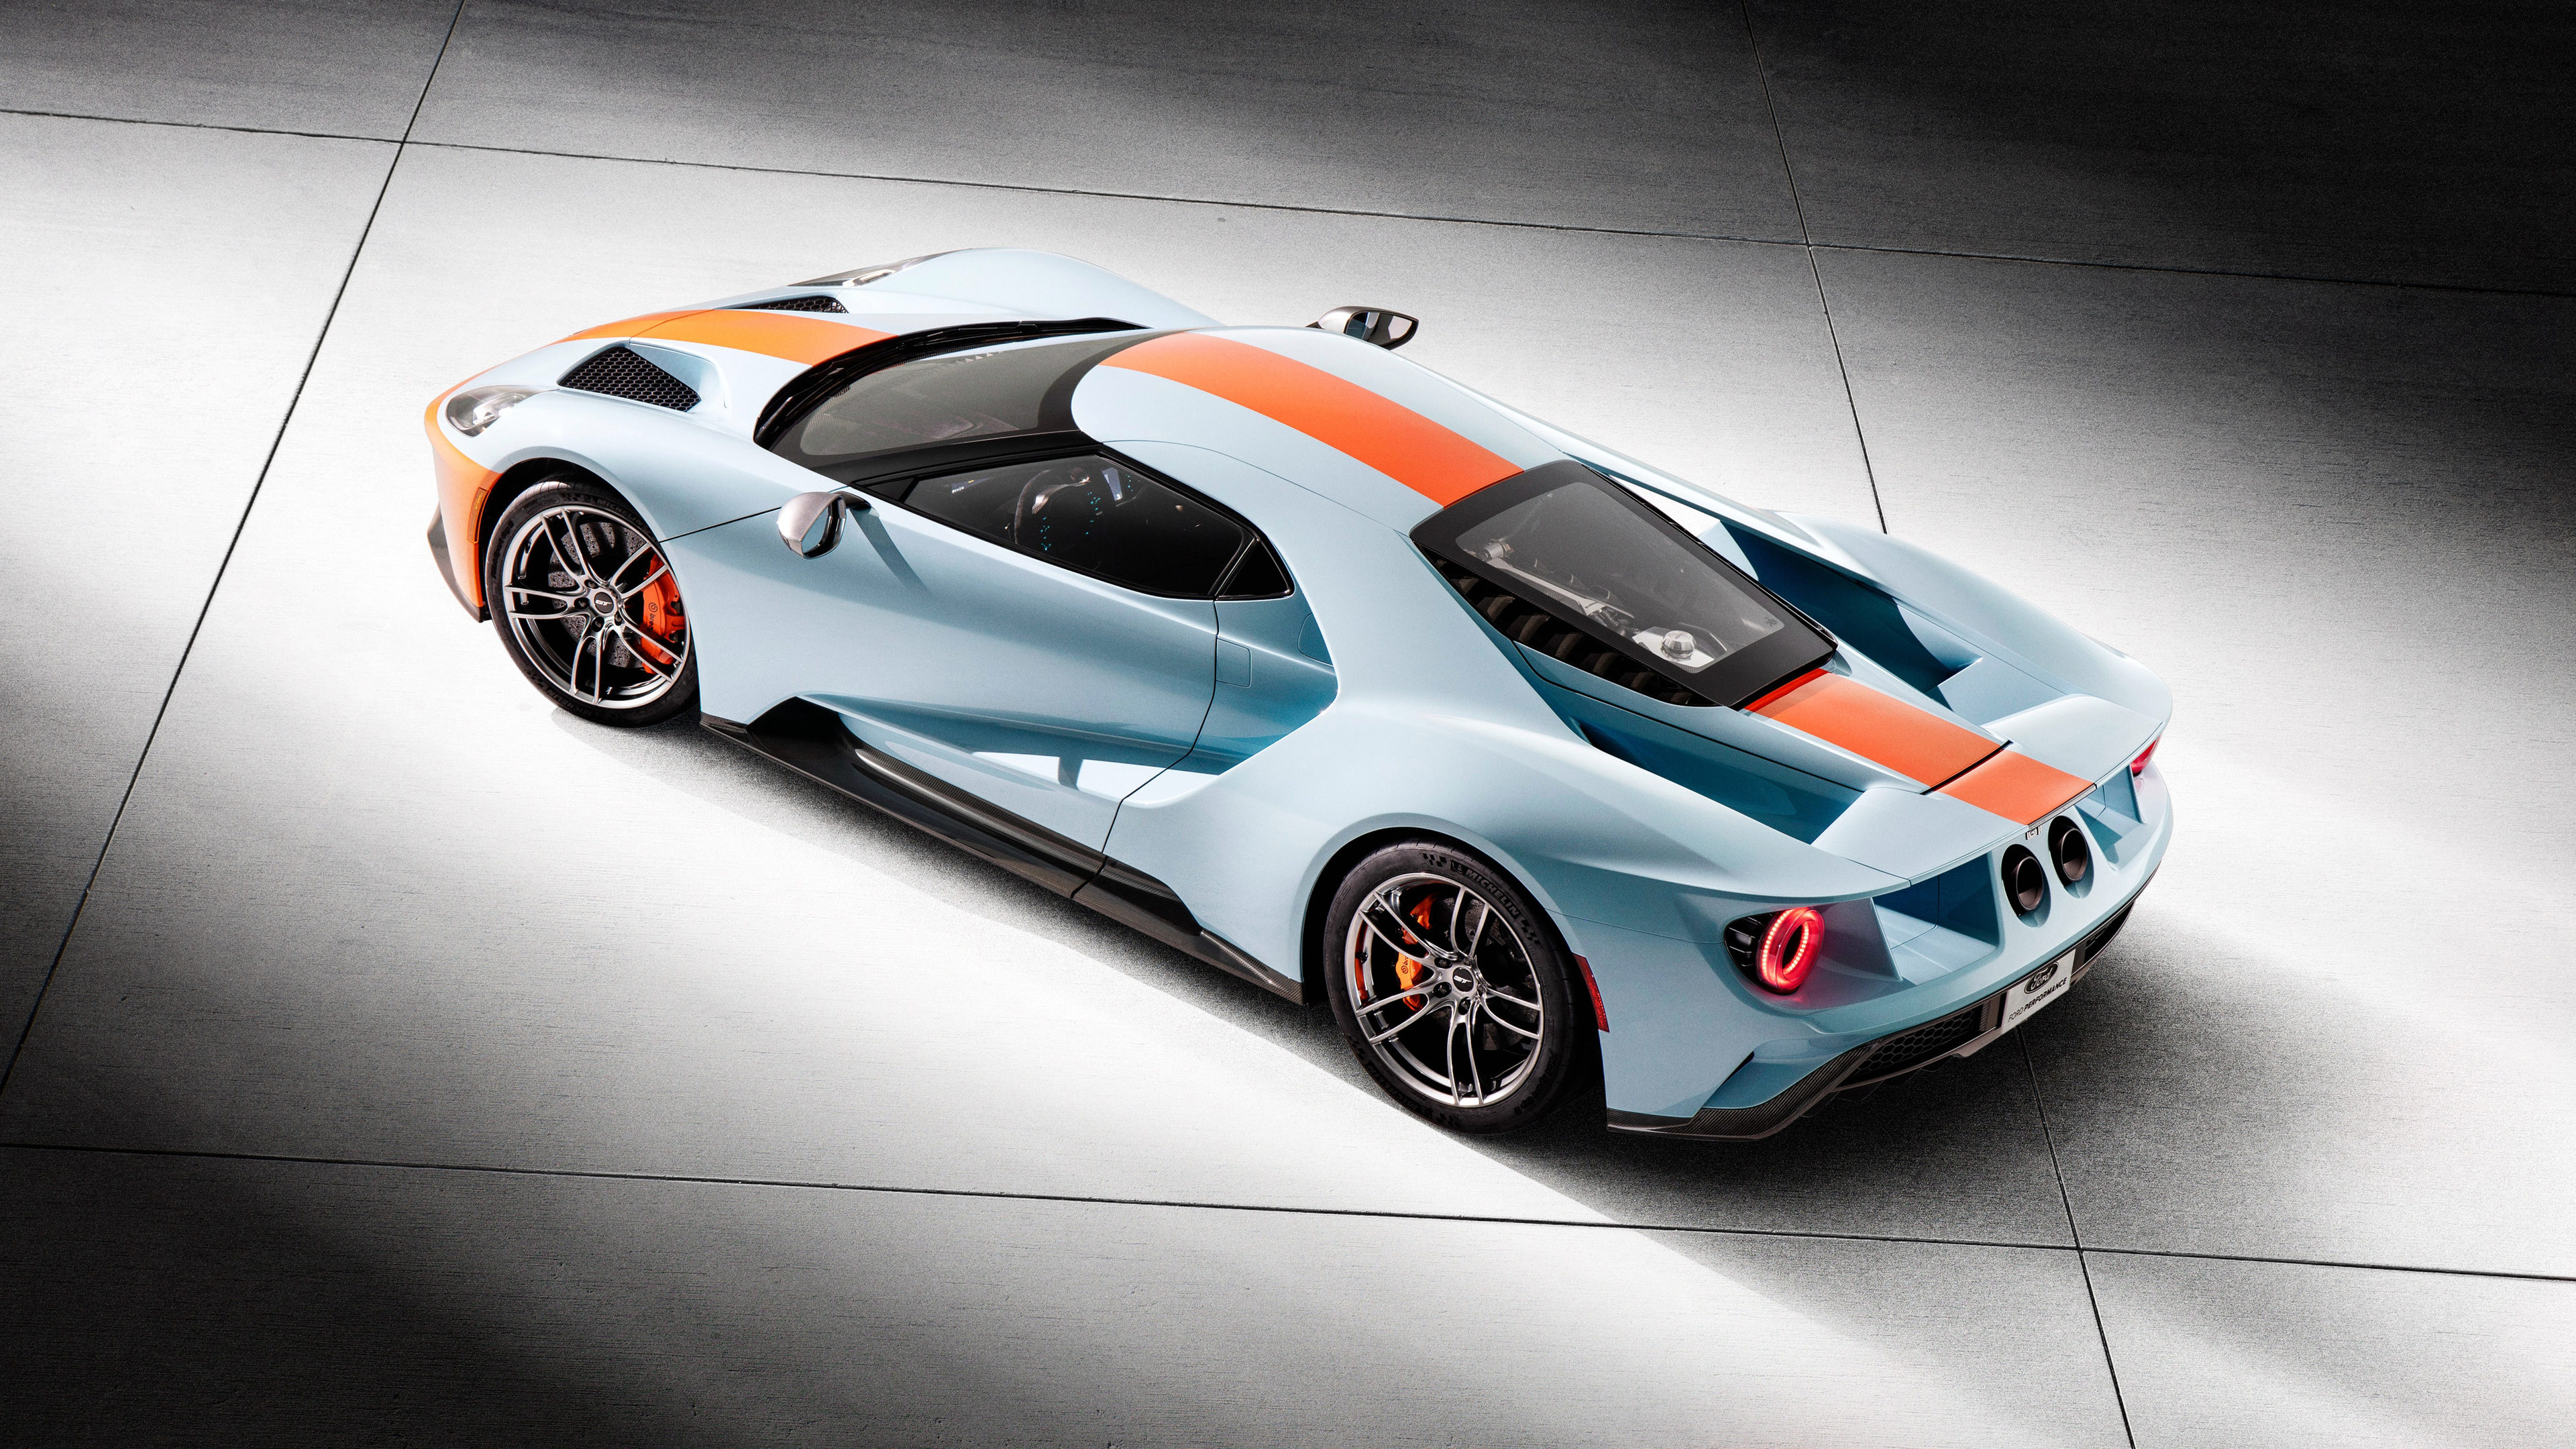 2018 ford gt heritage edition 4k 1539114234 - 2018 Ford GT Heritage Edition 4K - hd-wallpapers, ford wallpapers, ford gt wallpapers, cars wallpapers, 4k-wallpapers